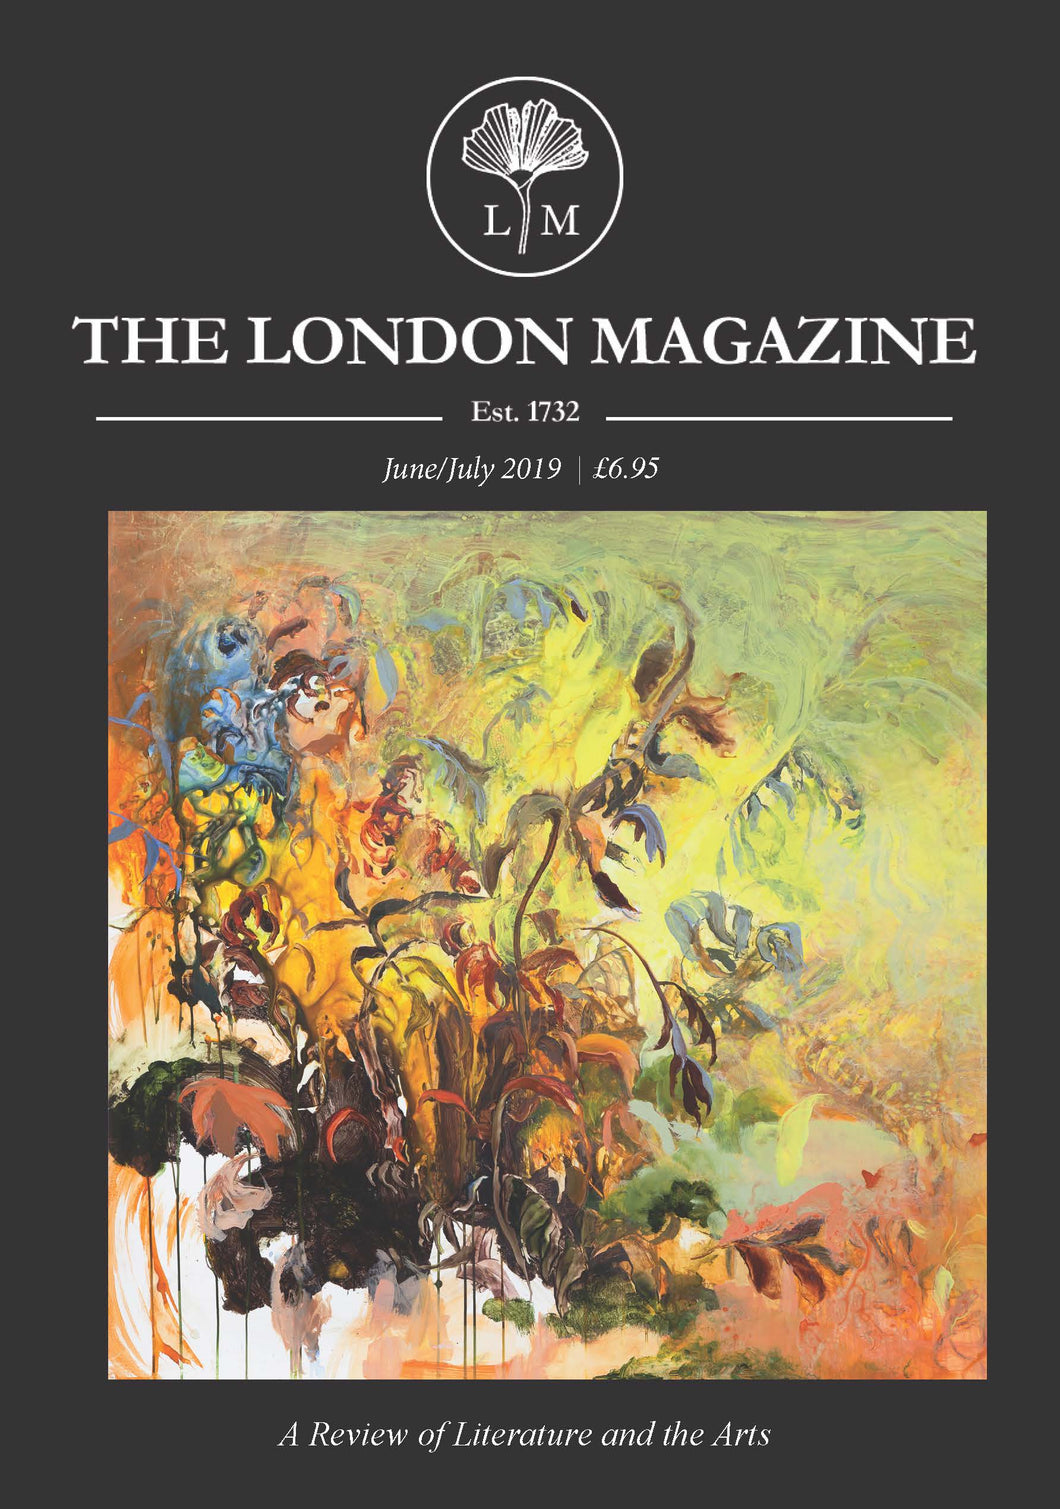 The London Magazine - June/July 2019